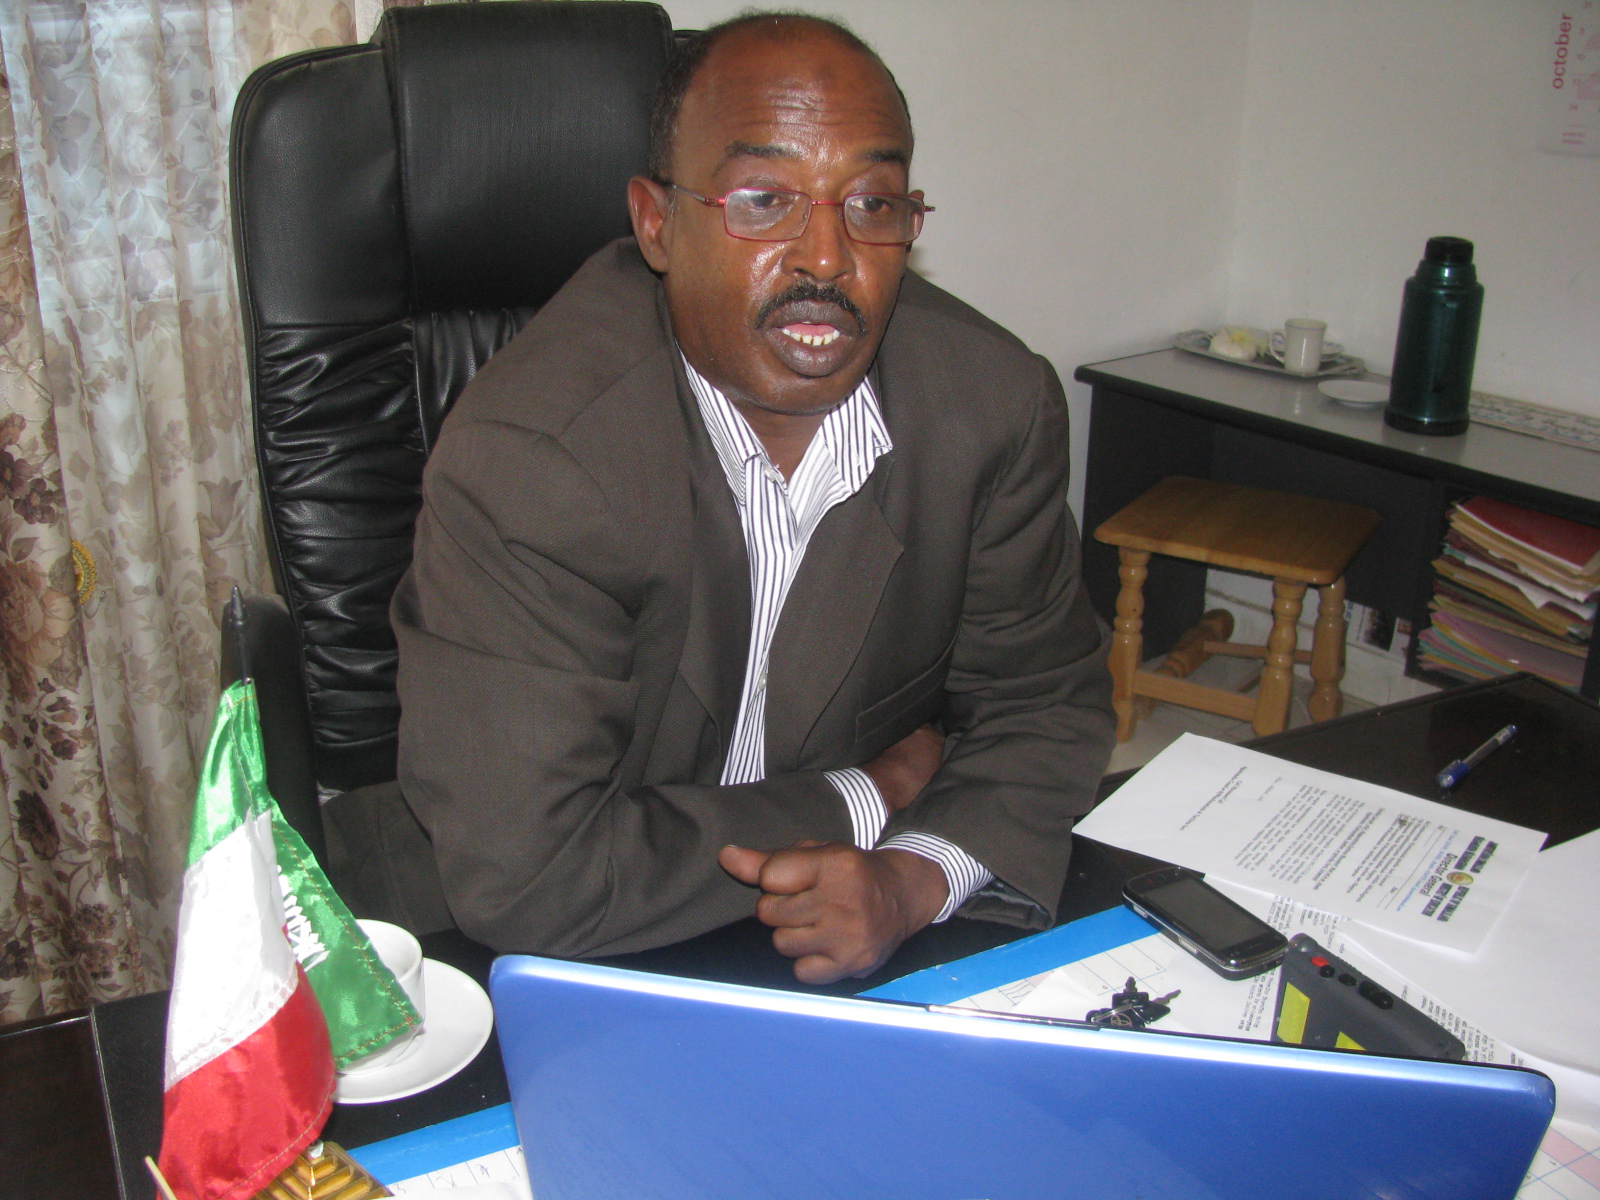 Ali Mohamed Ali, the director-general of Somaliland's Education Ministry